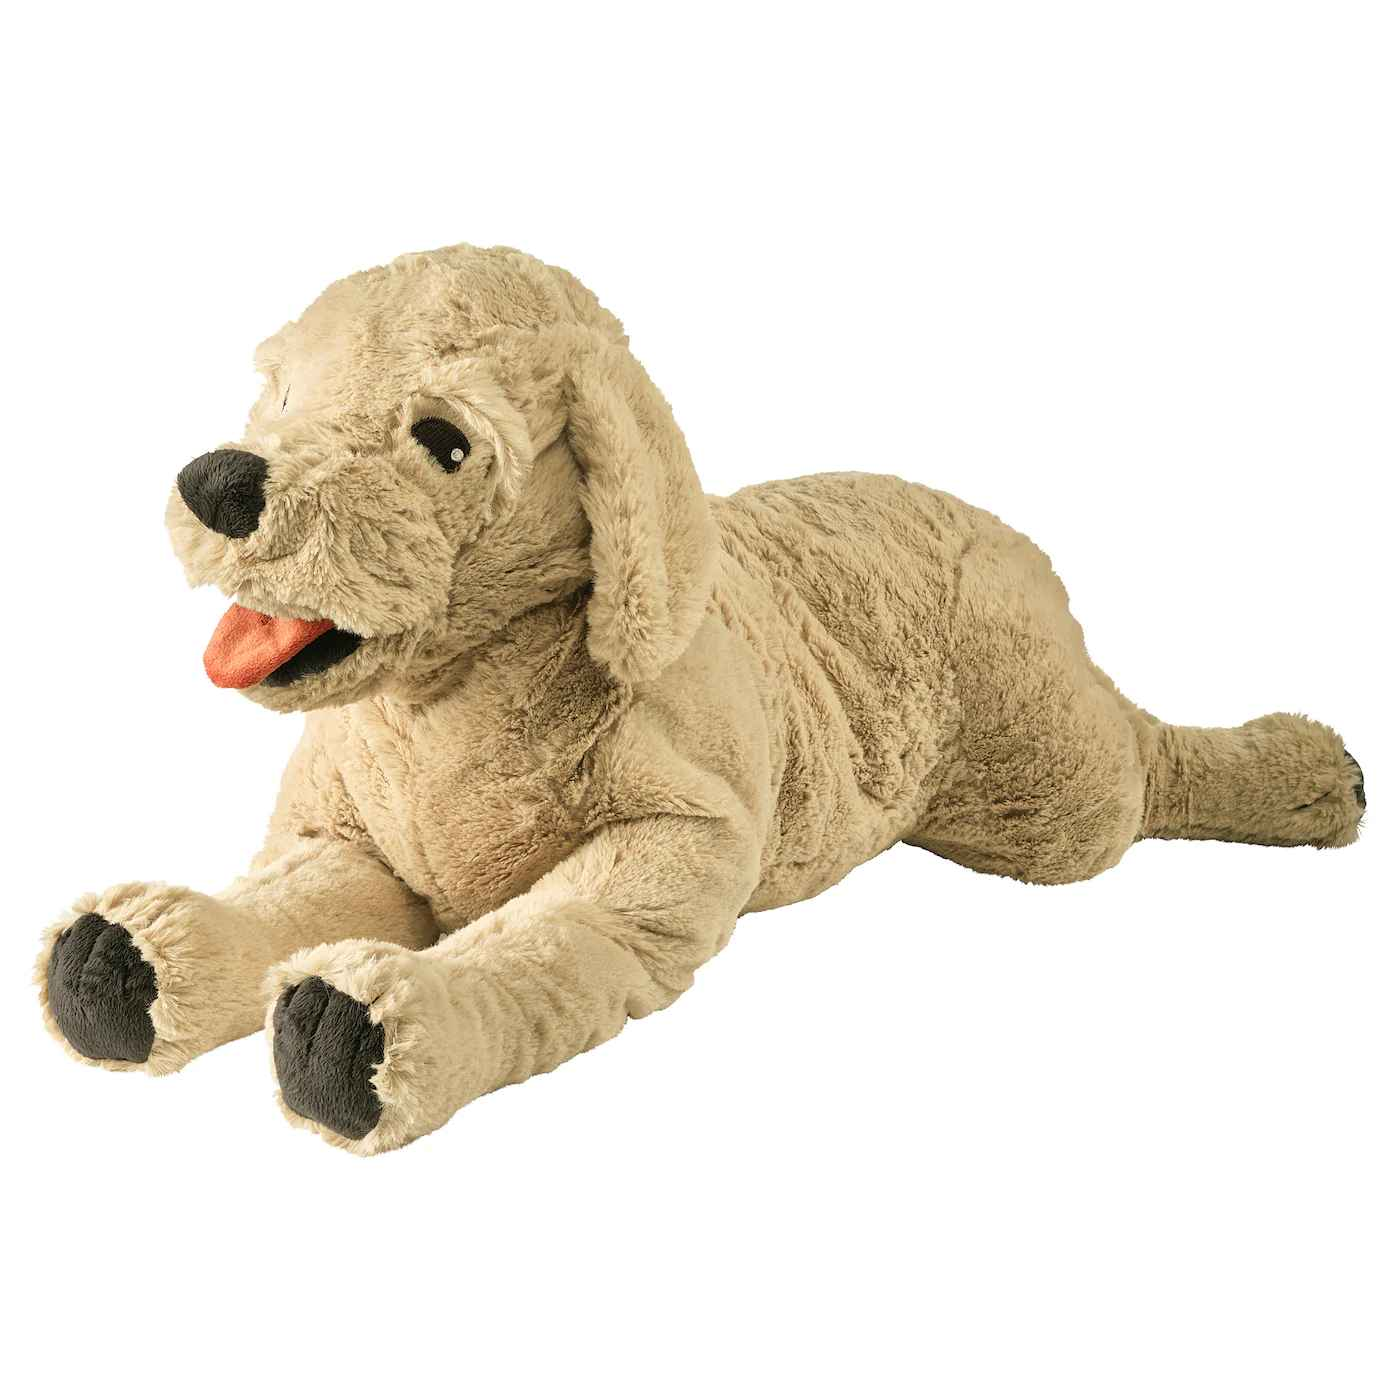 IKEA Stofftier Produkt-Golden-Retriever